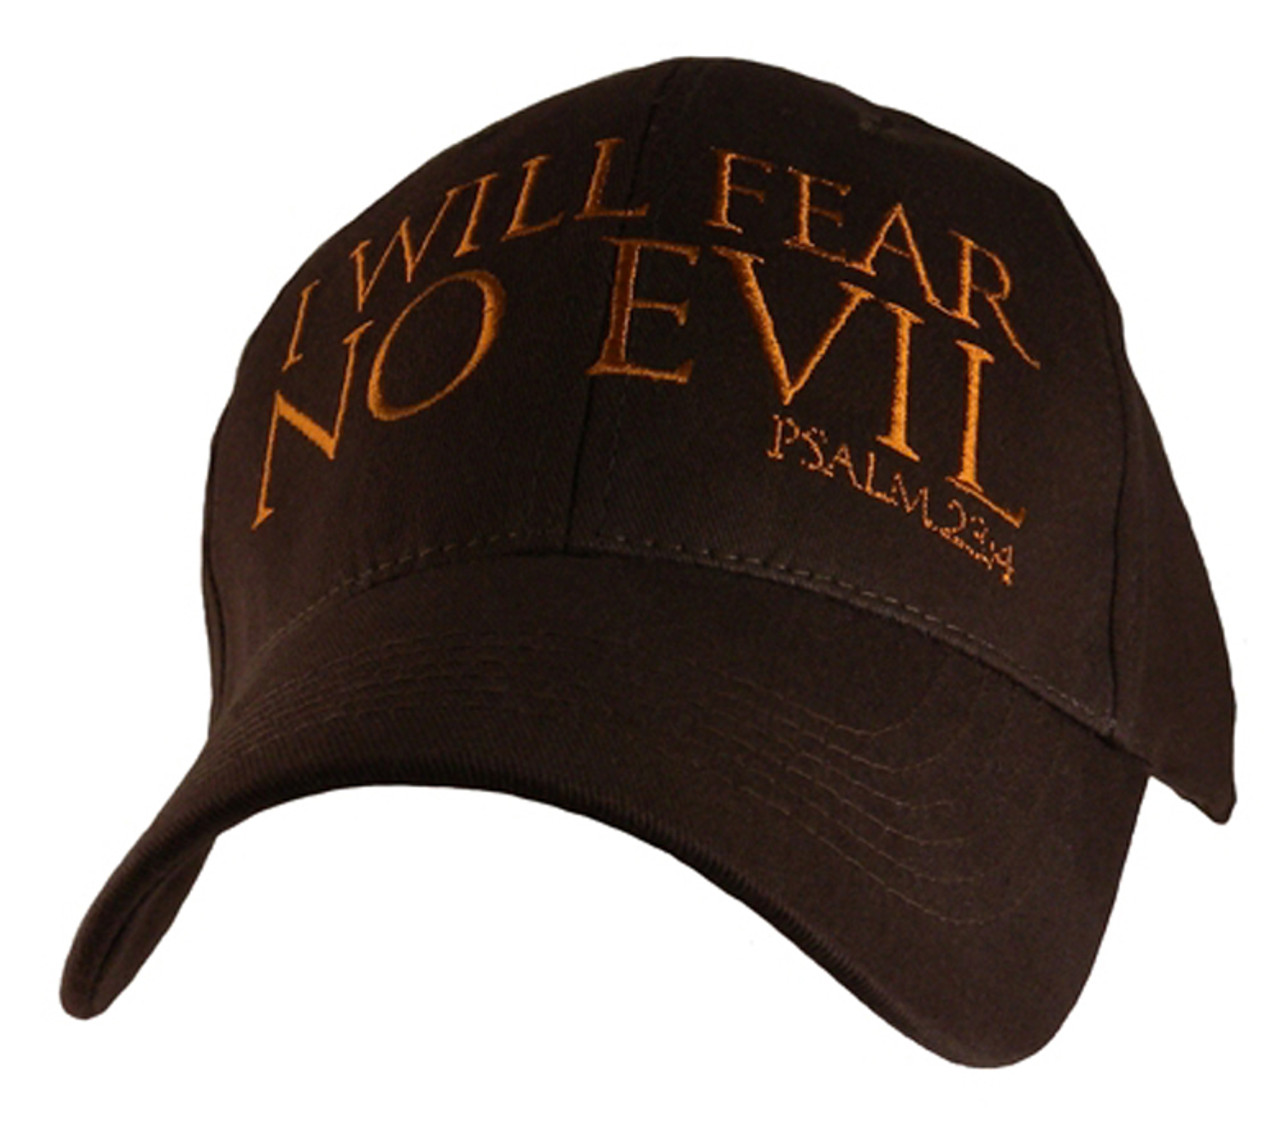 cheap christian baseball caps wholesale will fear no evil for thou art with me psalm hat cap mens